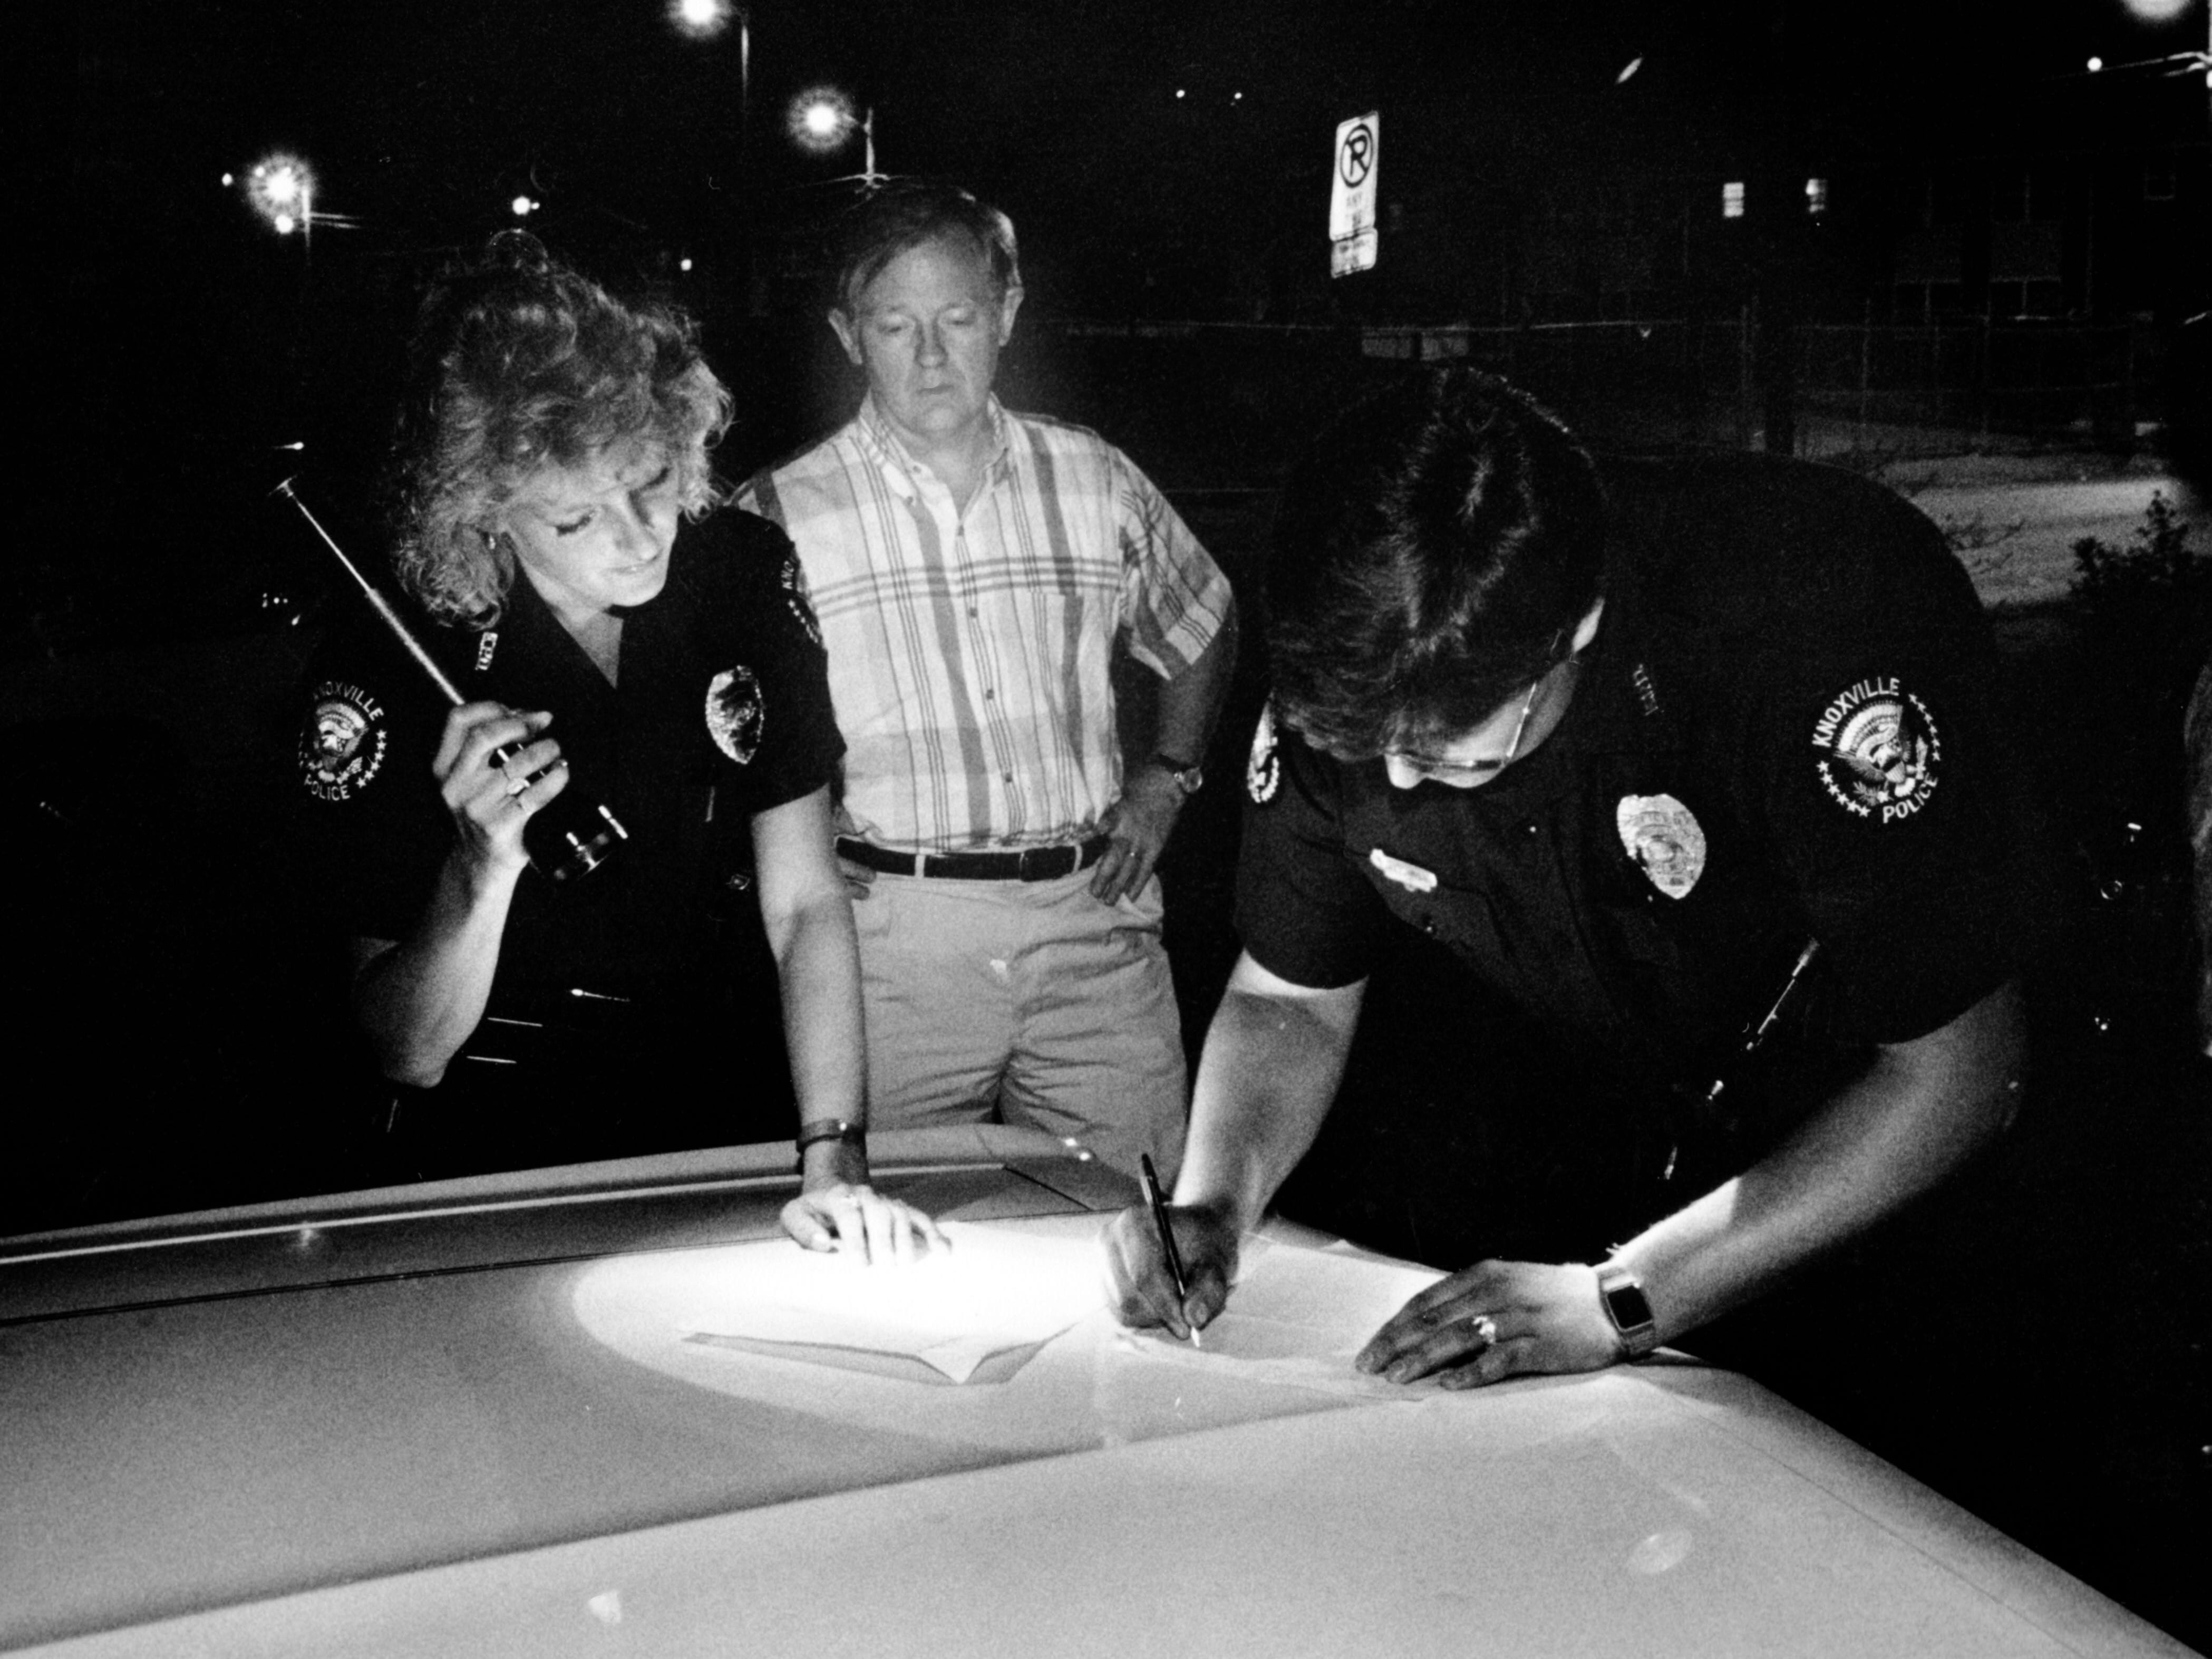 Mayor Victor Ashe riding a beat with Knoxville Police officers Tammy Byrd, left, and Tim Snoderly during a domestic disturbance call in May of 1990.